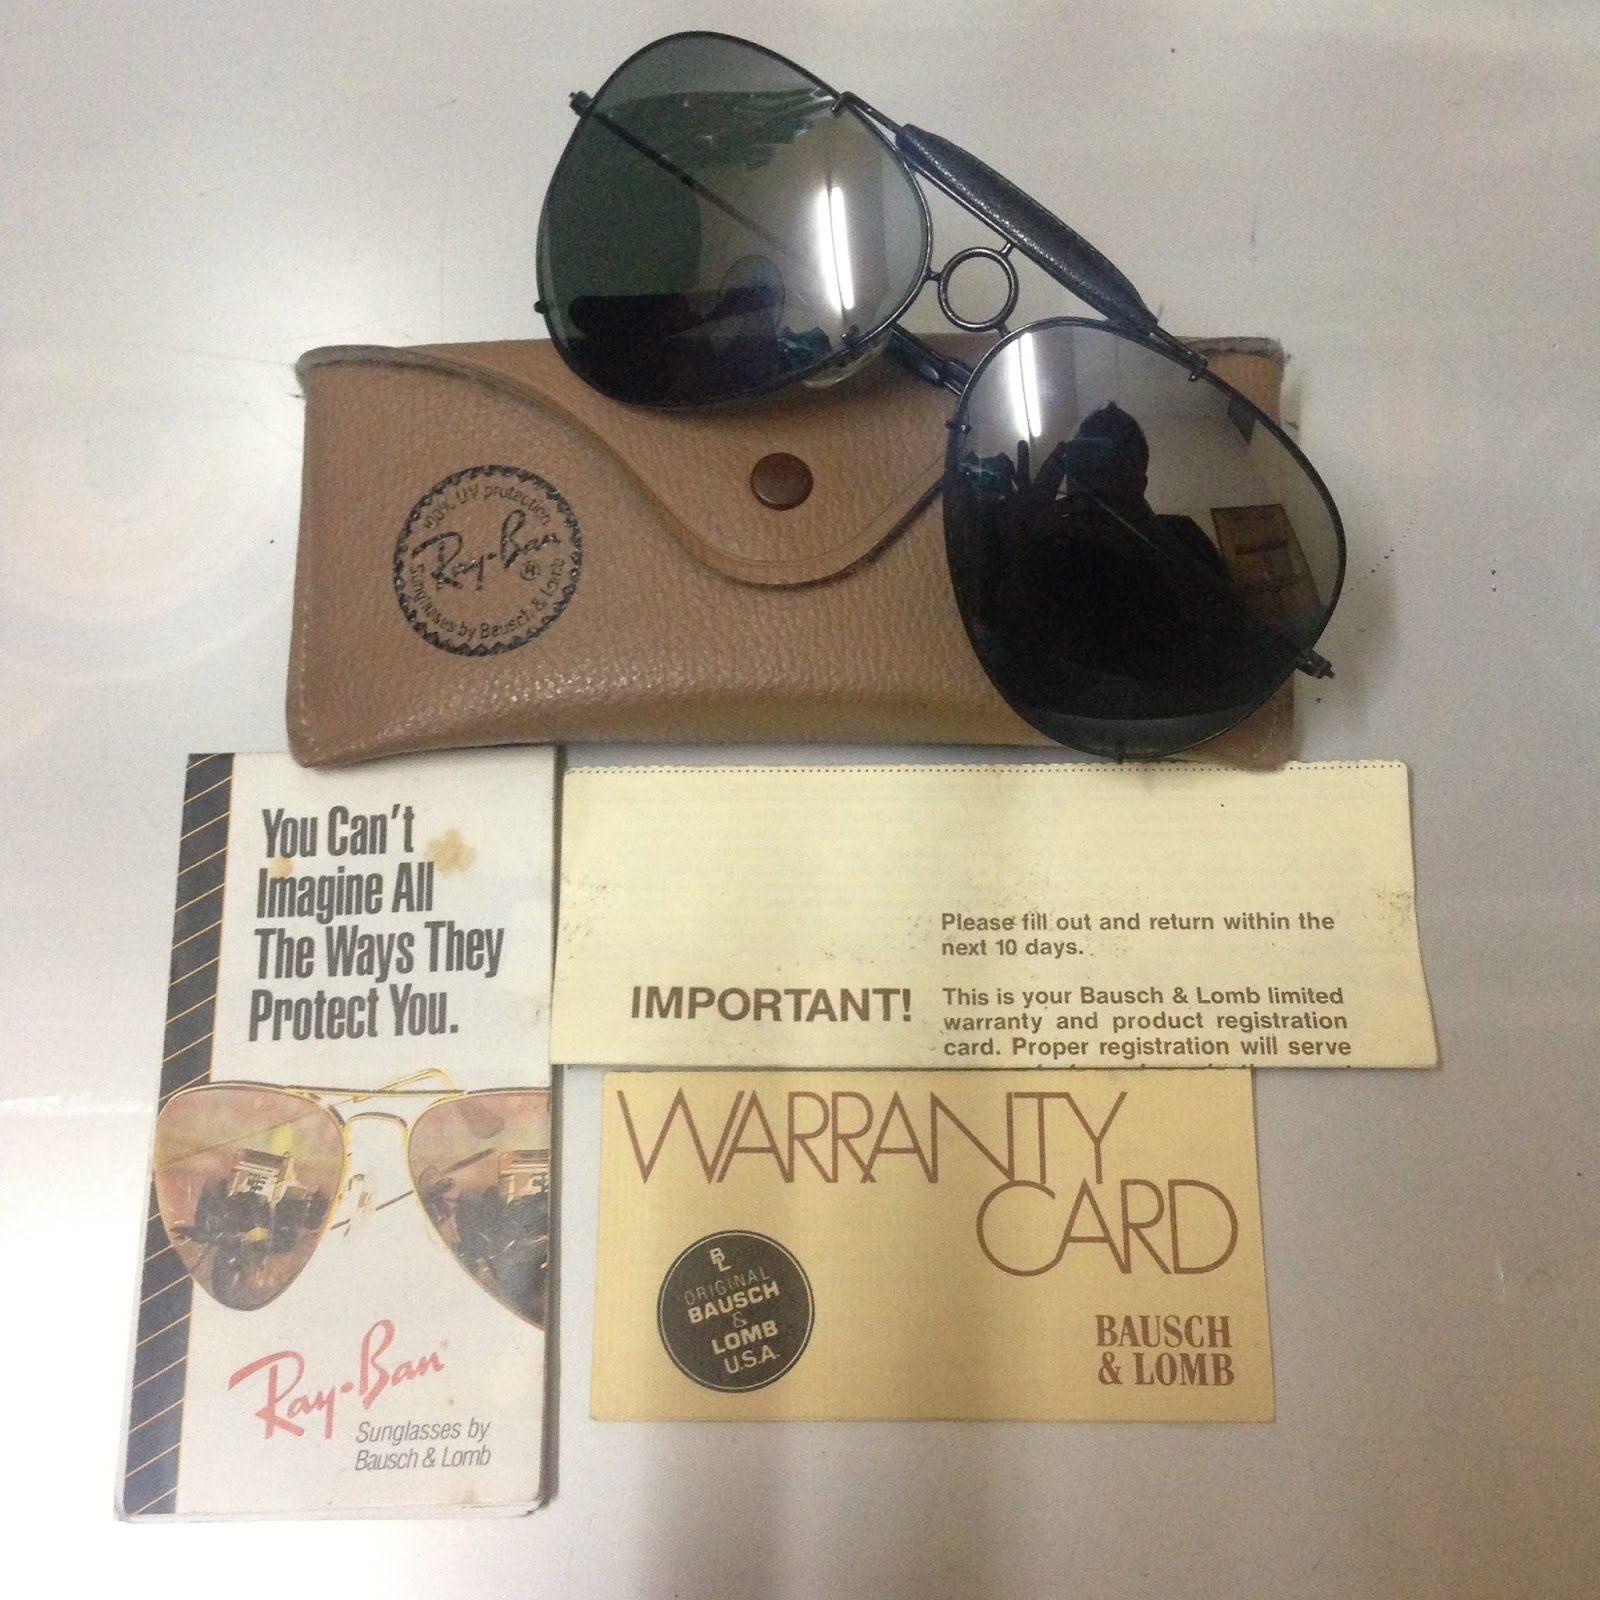 ray ban warranty cabh  Lens : G-31 full mirror lenses Size : 65mm Condition : 9/10 like new  Package : Hardcase original rayban, brochure, warranty card & tag rayban